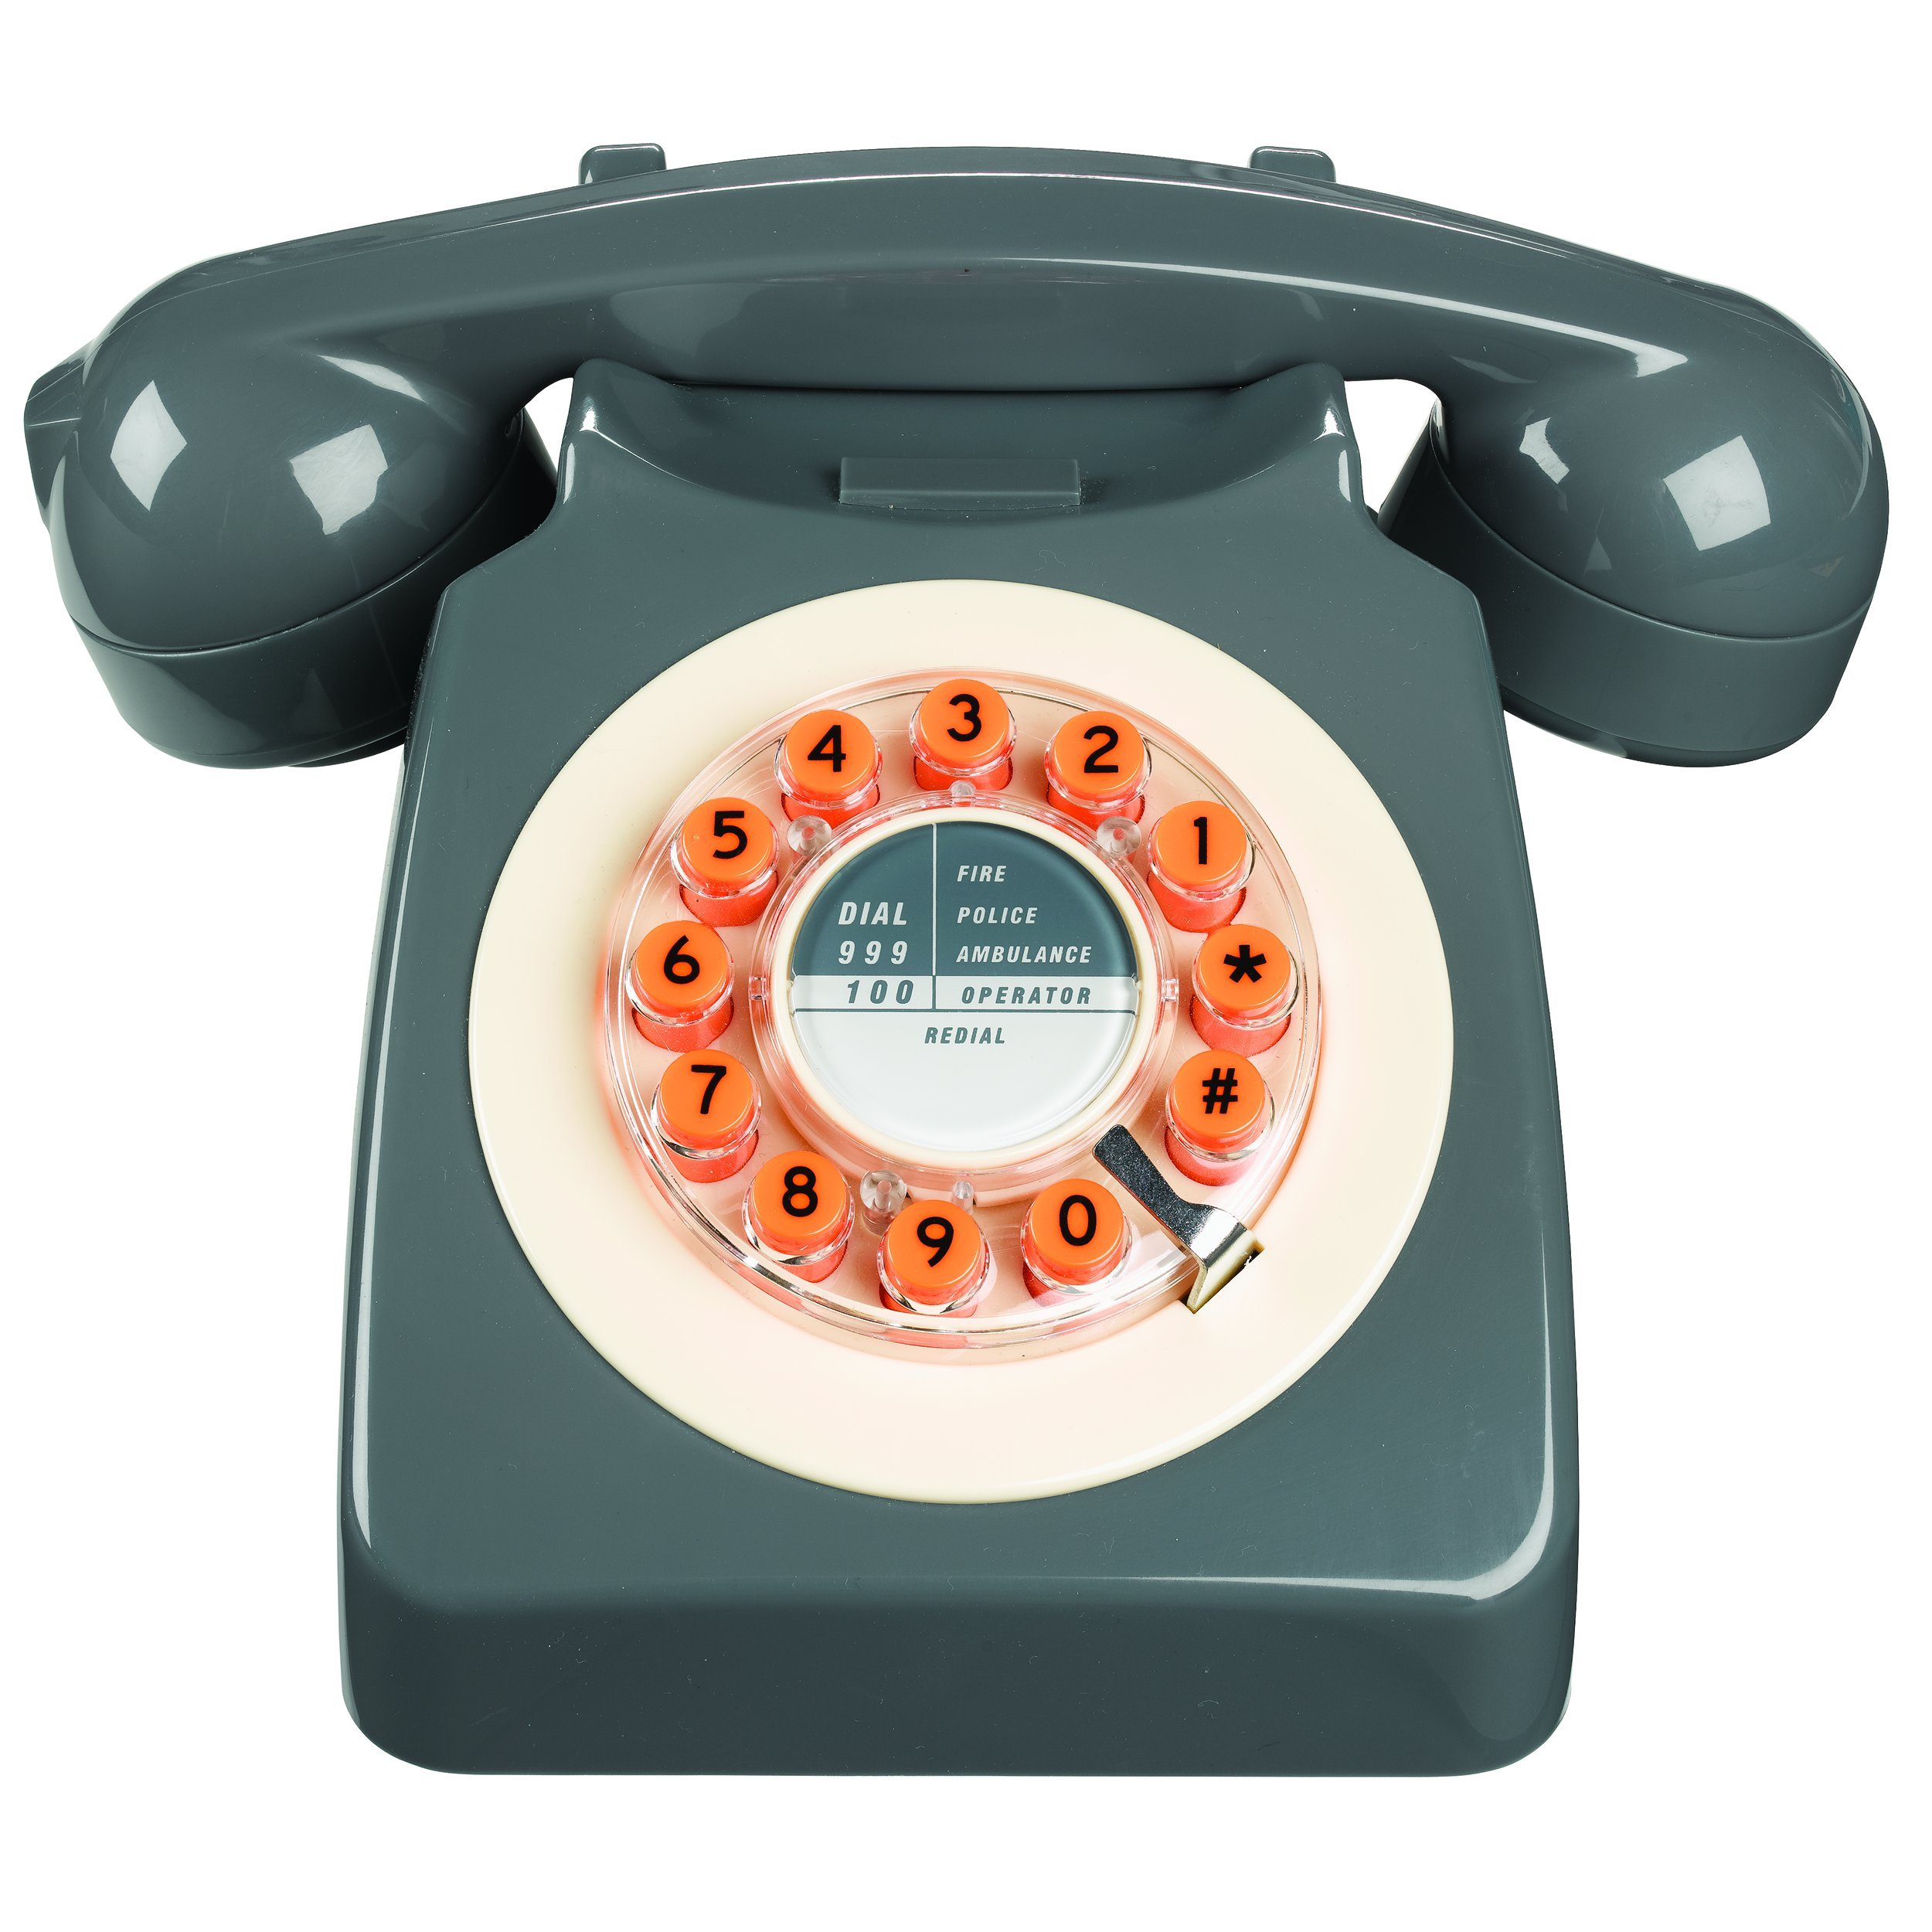 Wild Wood Rotary Design Retro Landline Phone for Home, Concrete Grey